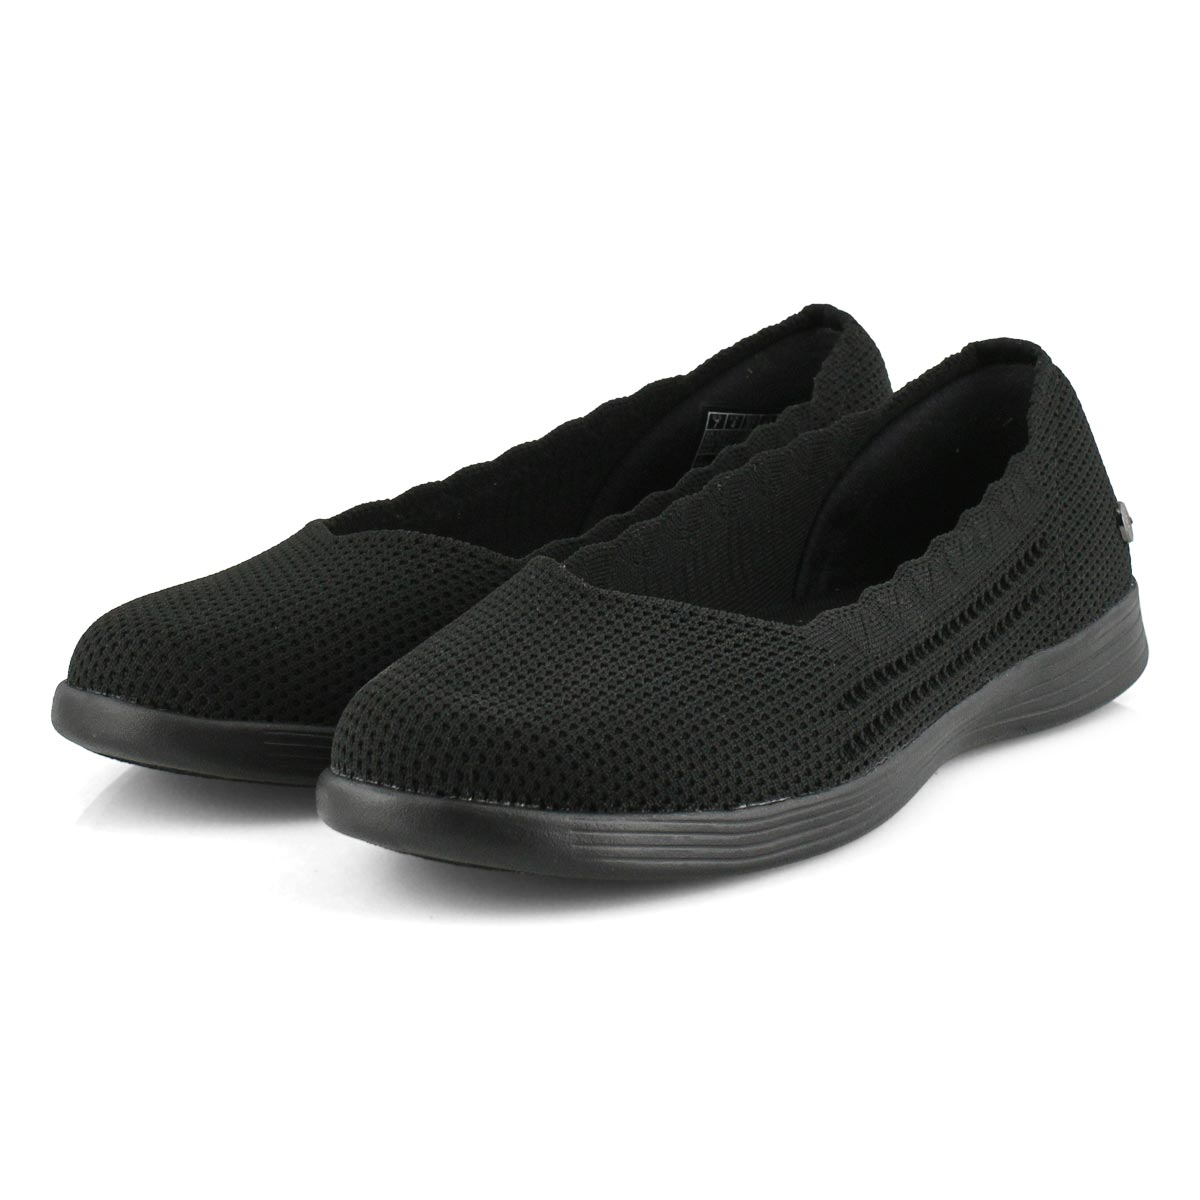 Lds On-The-Go Dreamy Mia blk slip on